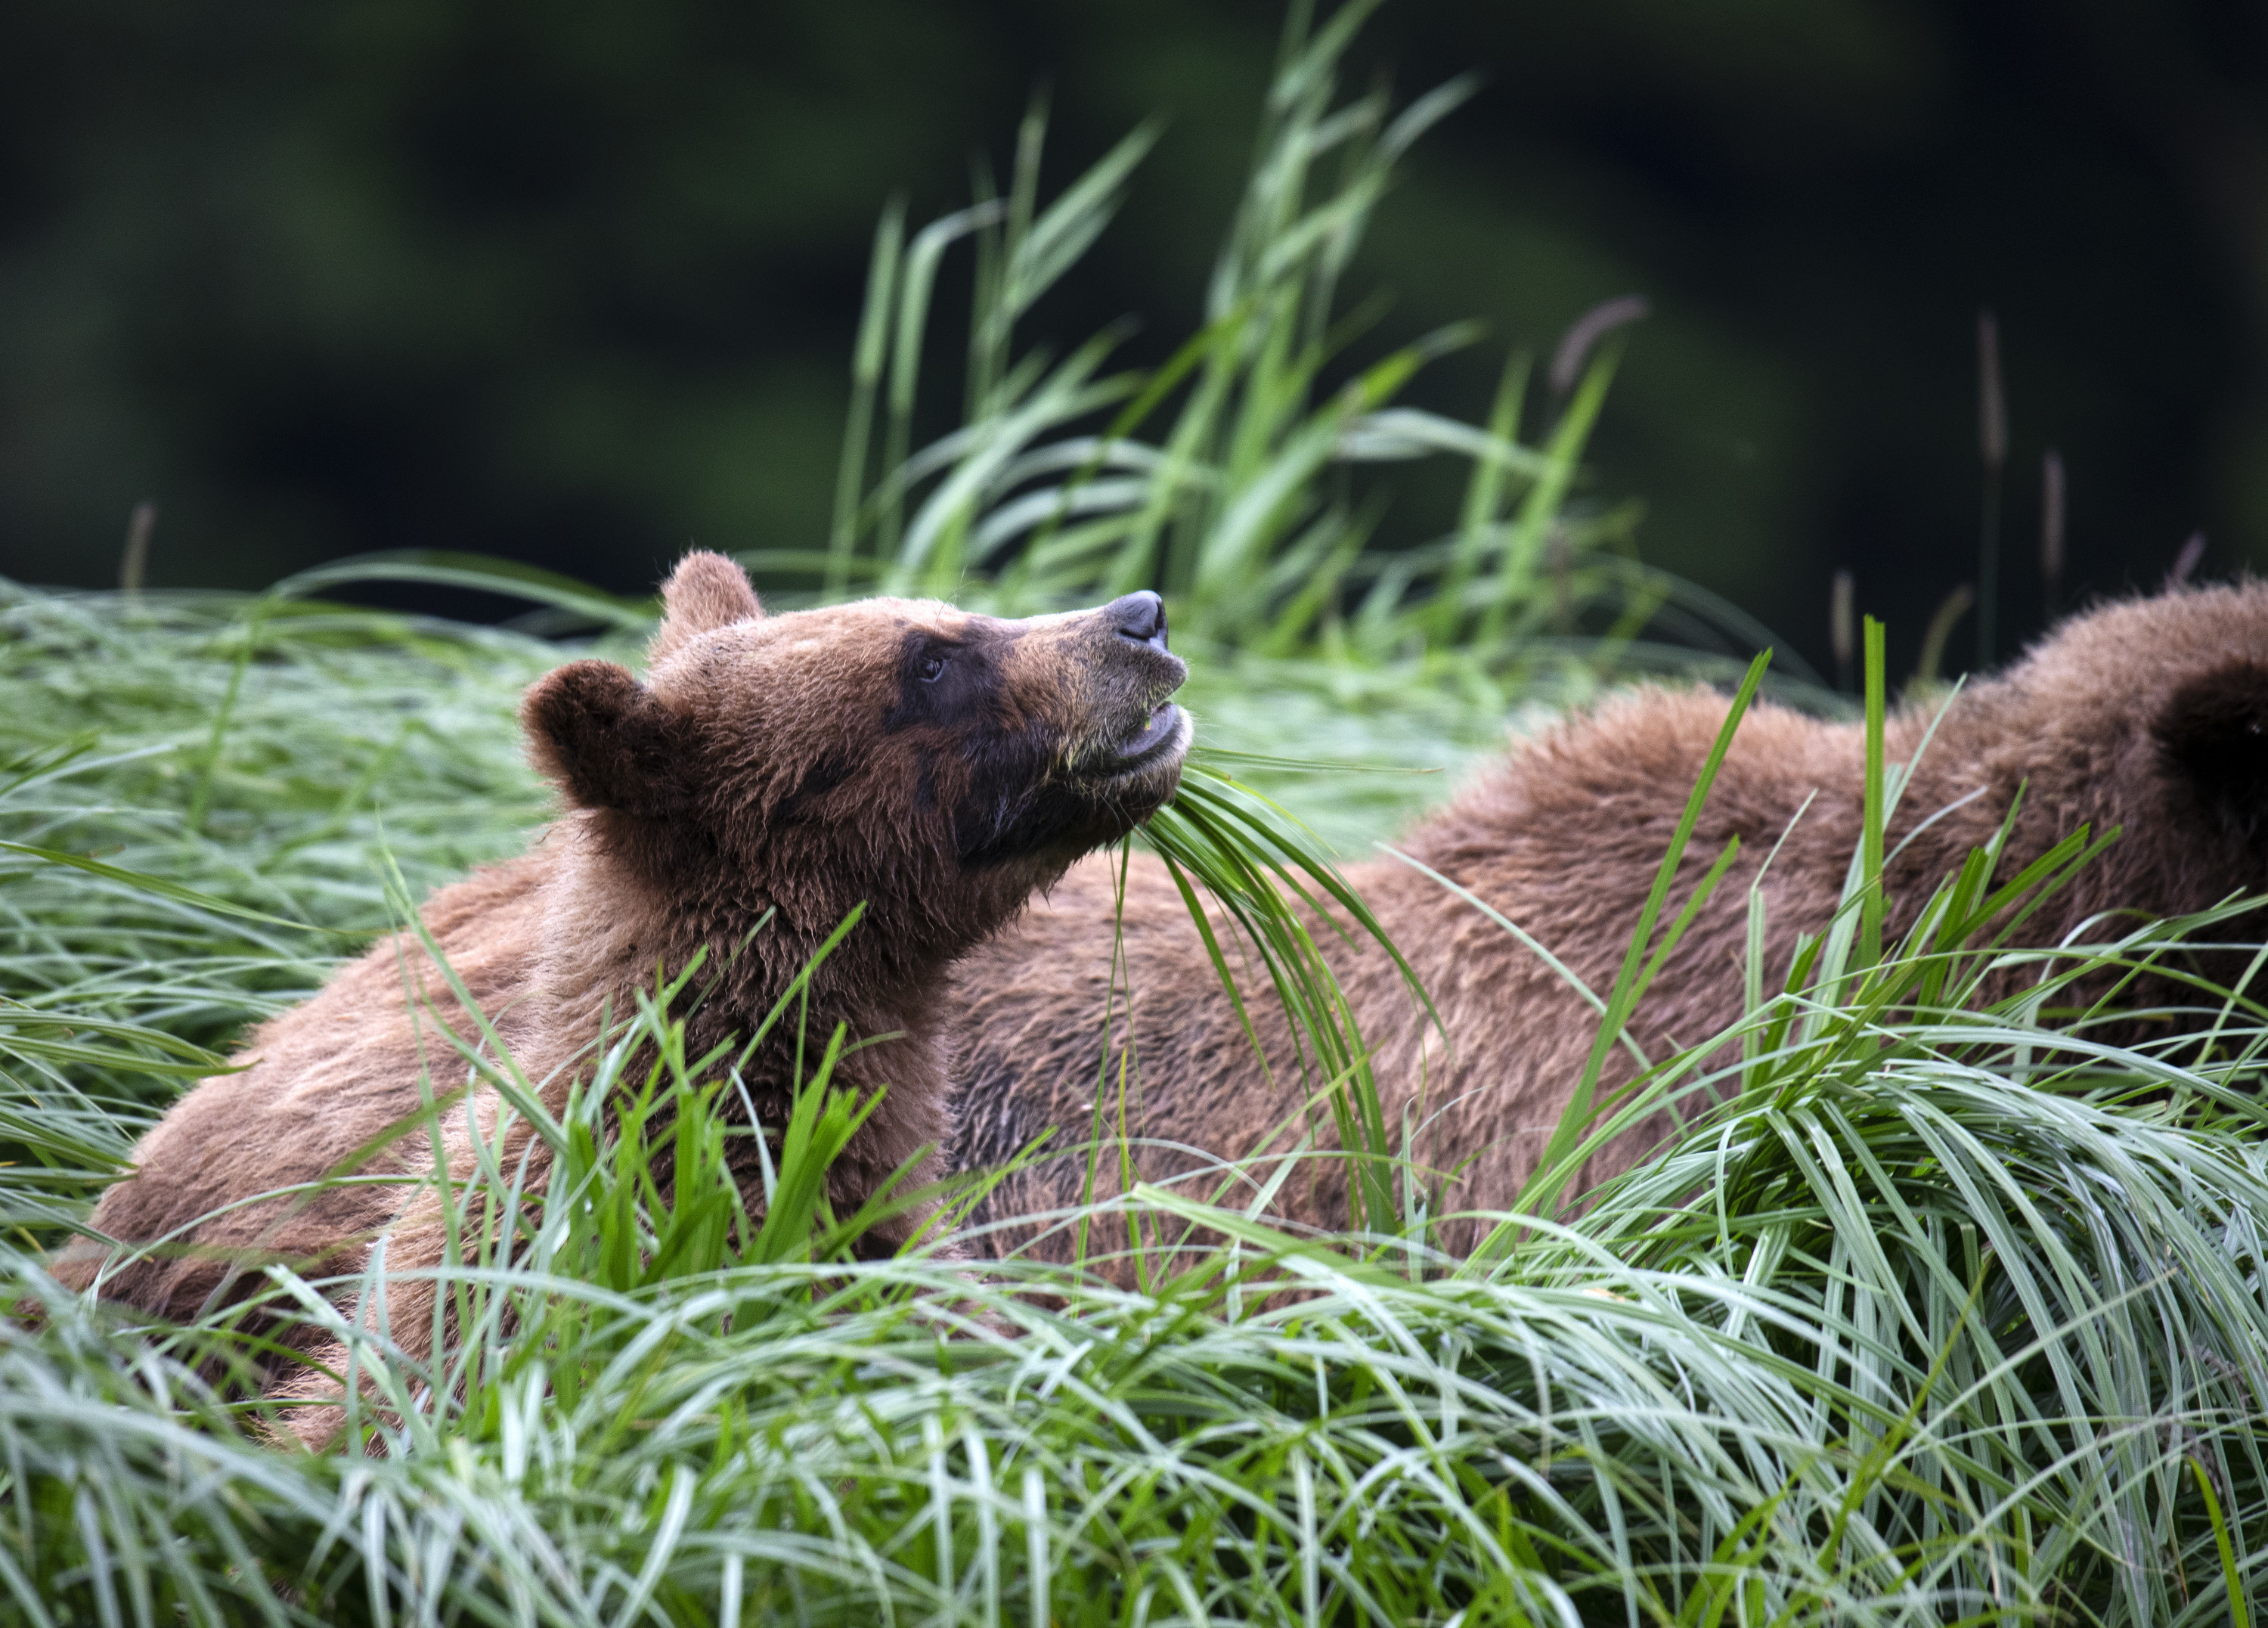 A grizzly bear cub eating sedge. (National Geographic for Disney+/Matthew Hood)